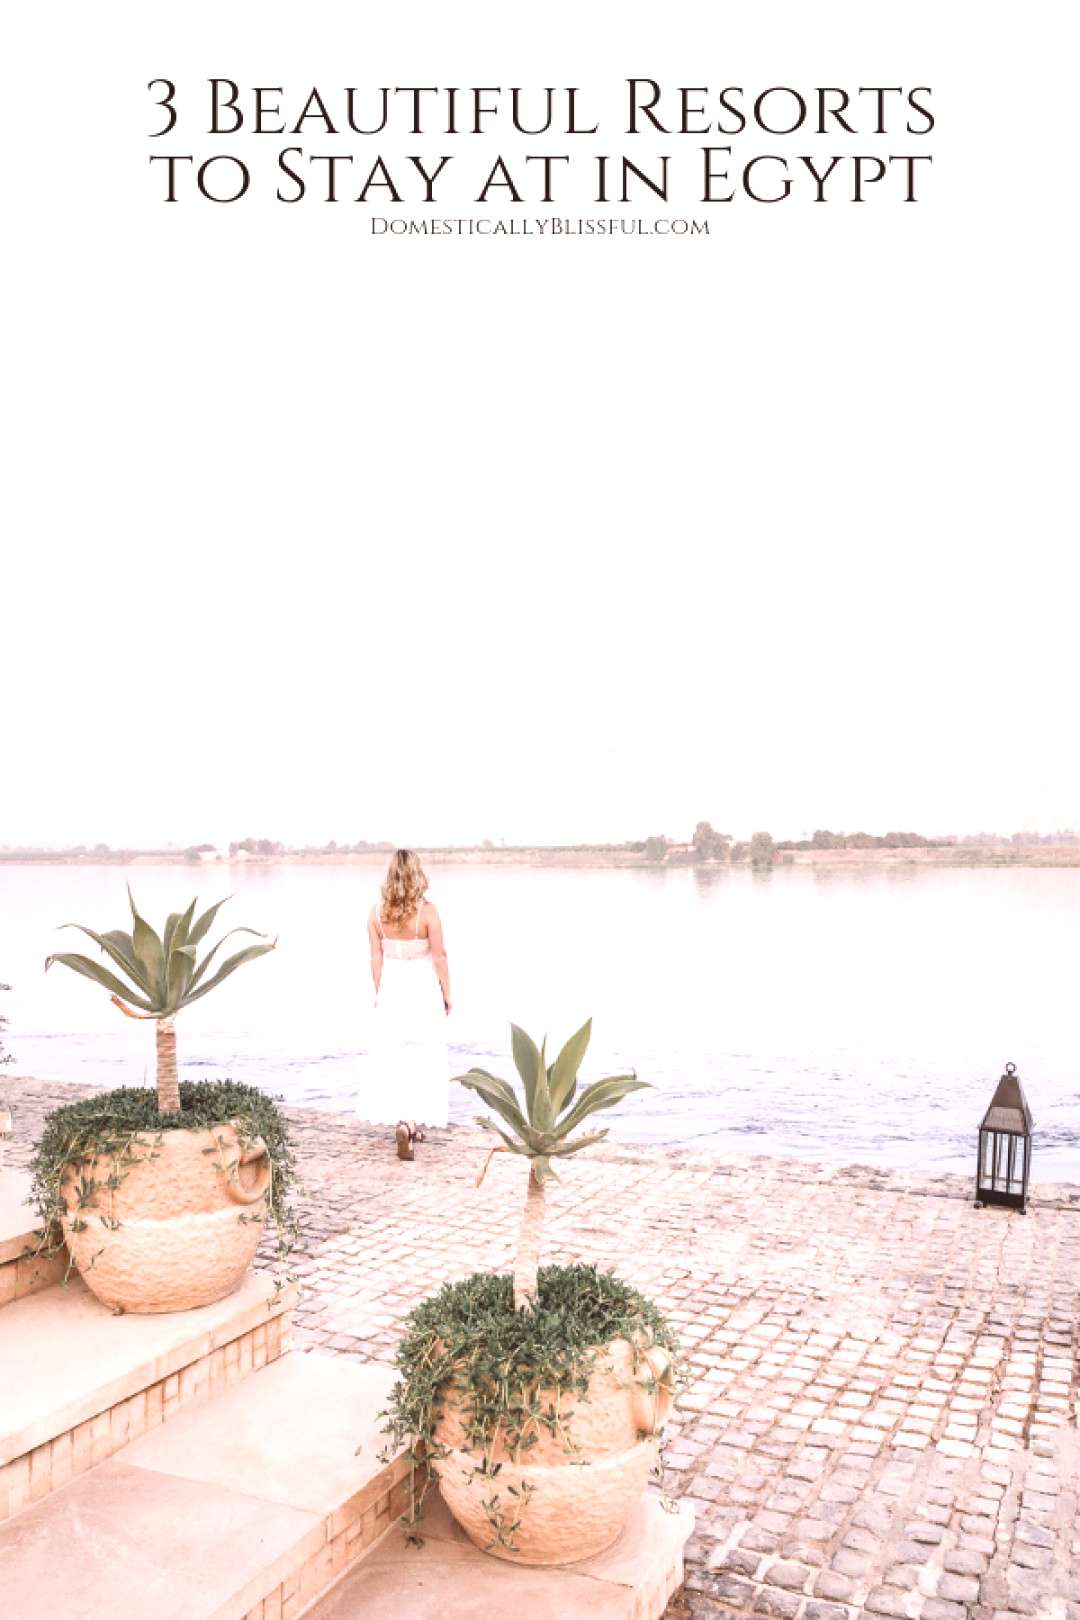 3 Beautiful Resorts to Stay at in Egypt - -